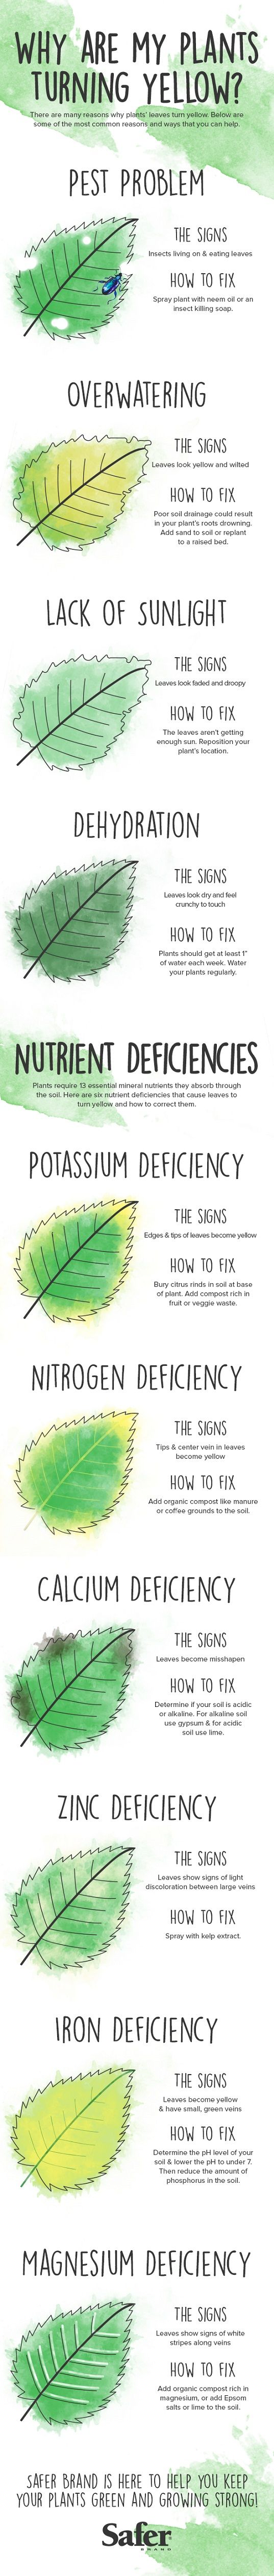 Infographic : Why are my plants turning yellow?